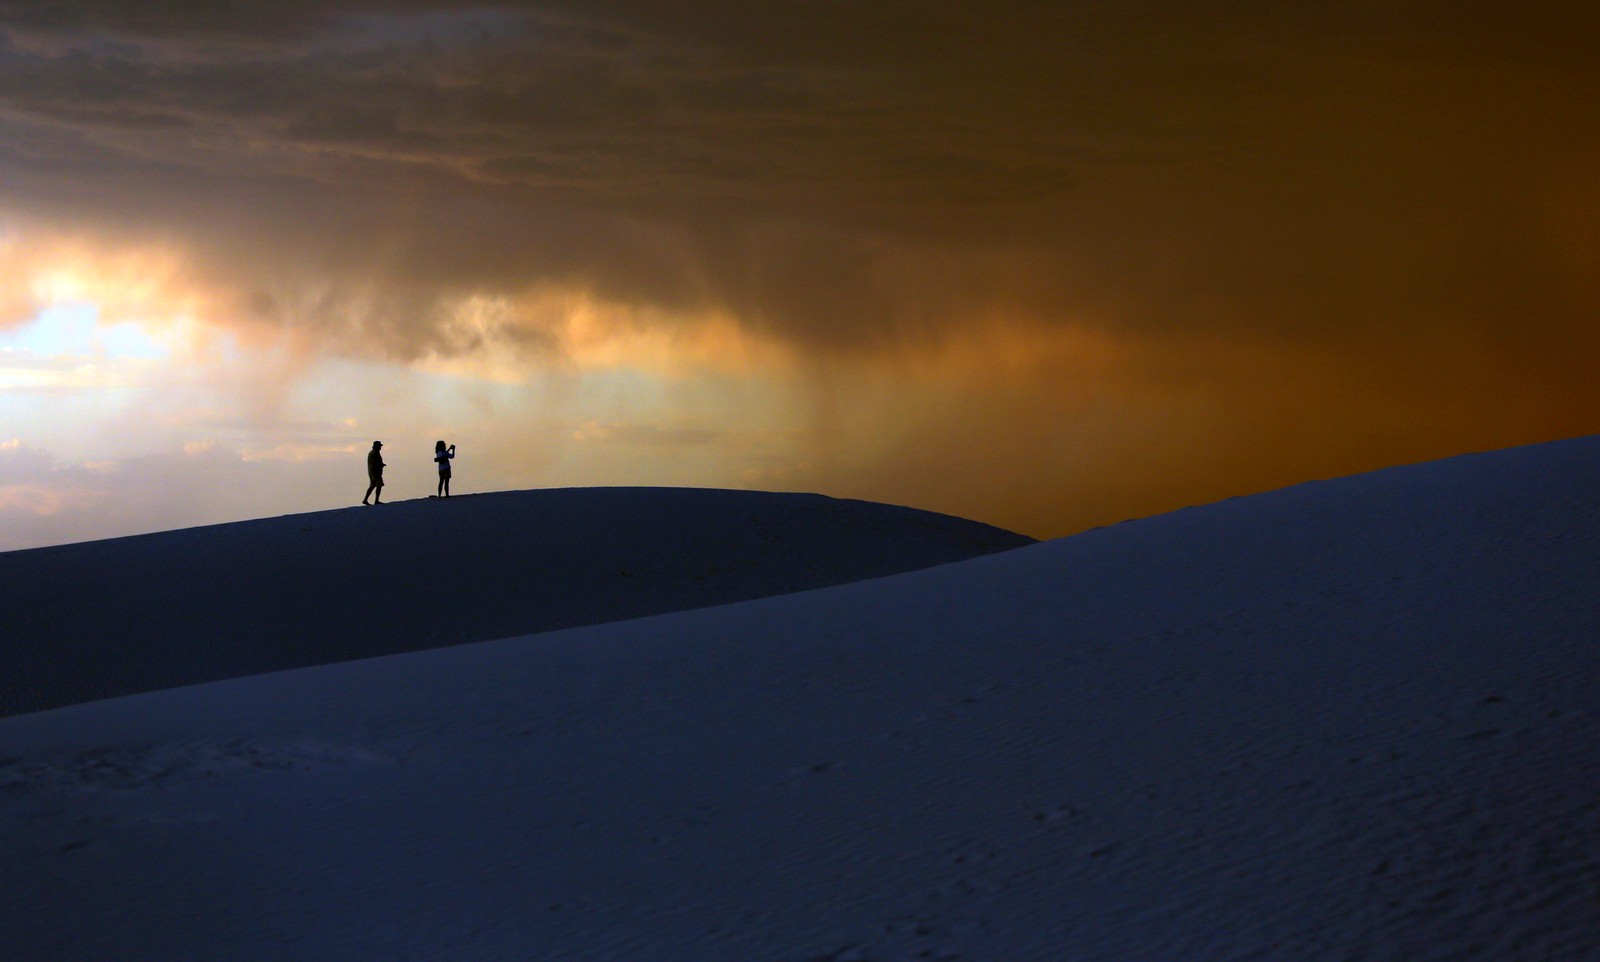 Det nærmer seg en storm ved White Sands National Monument i New Mexico.